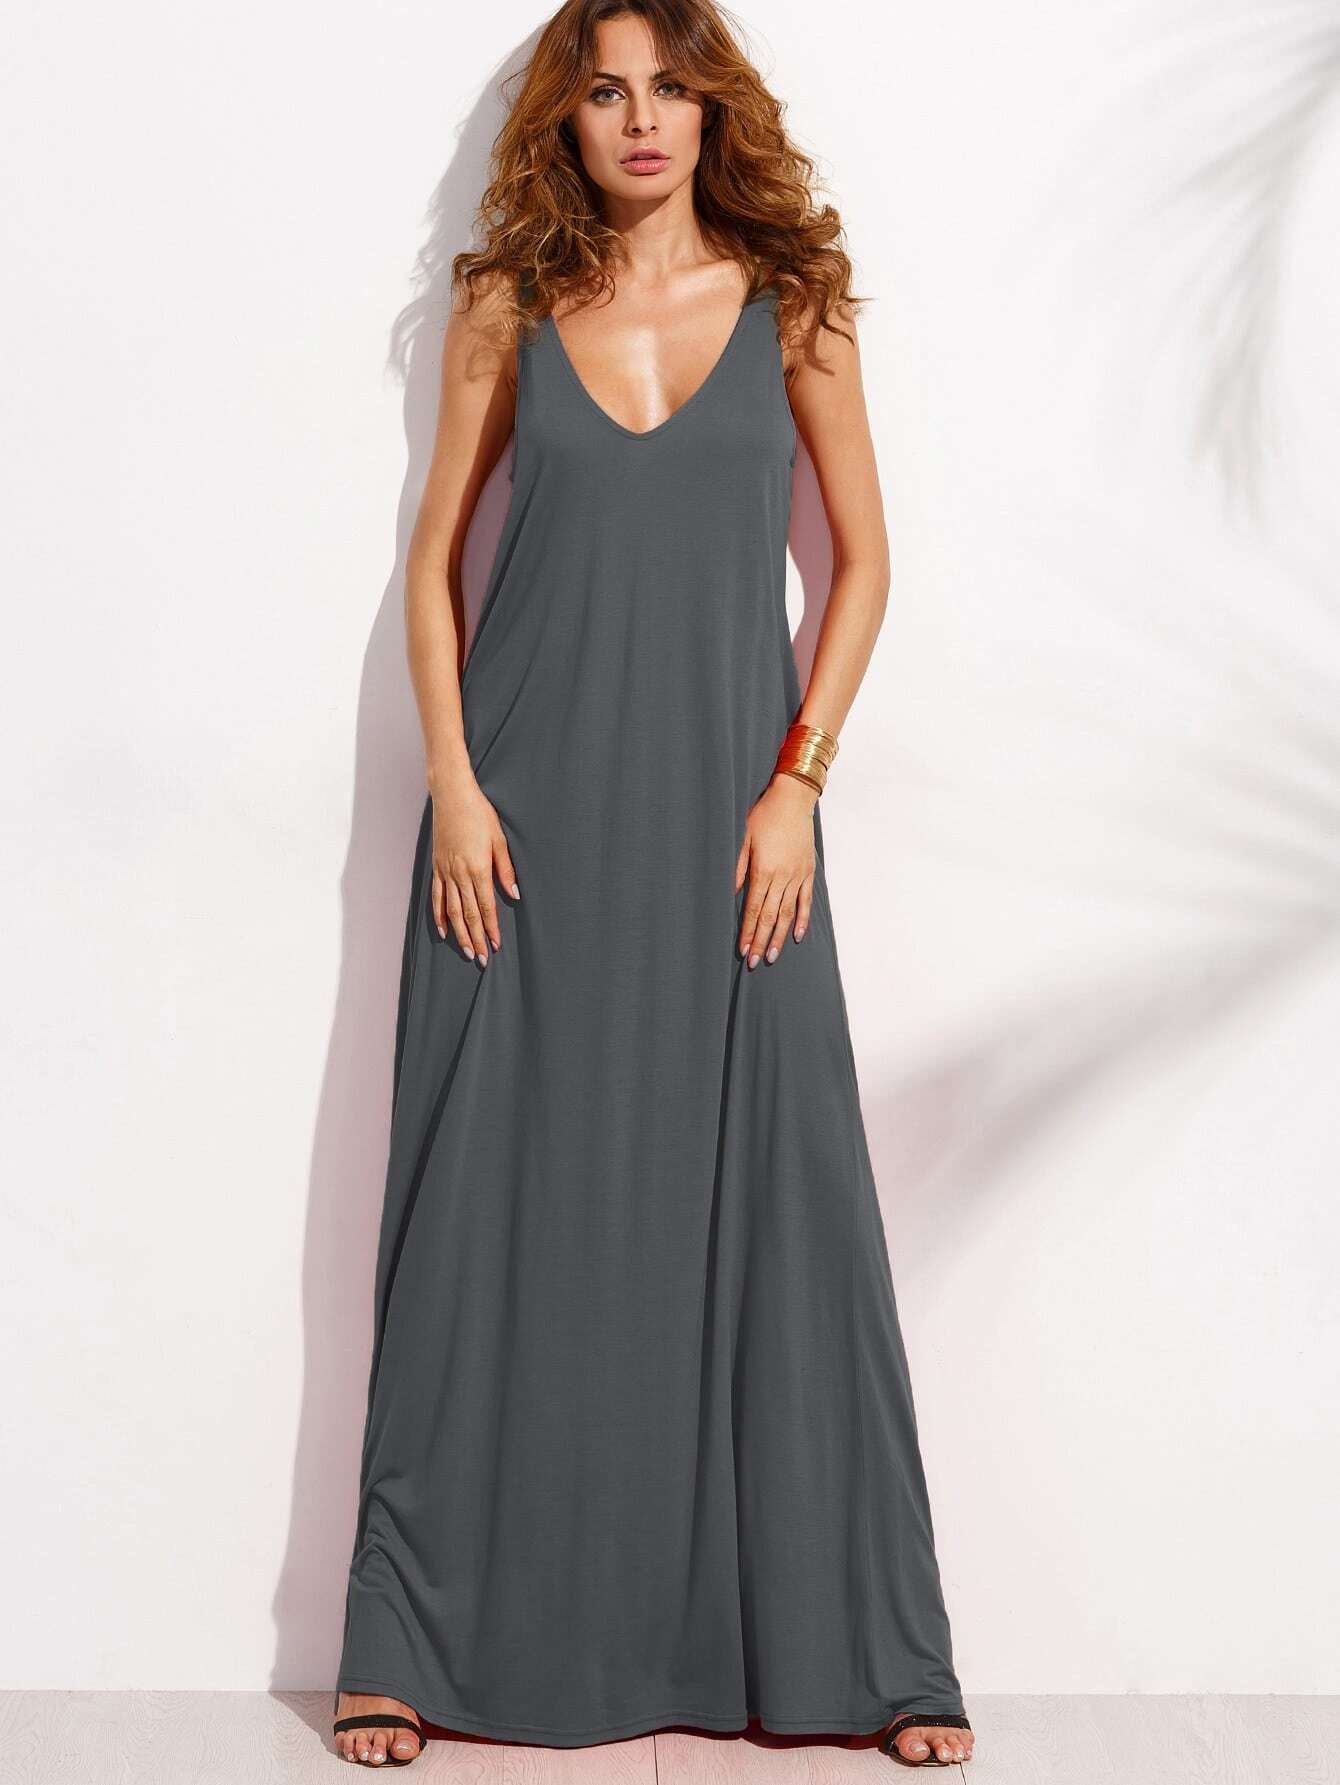 Double V Neck Jersey Tent Dress dress170706460